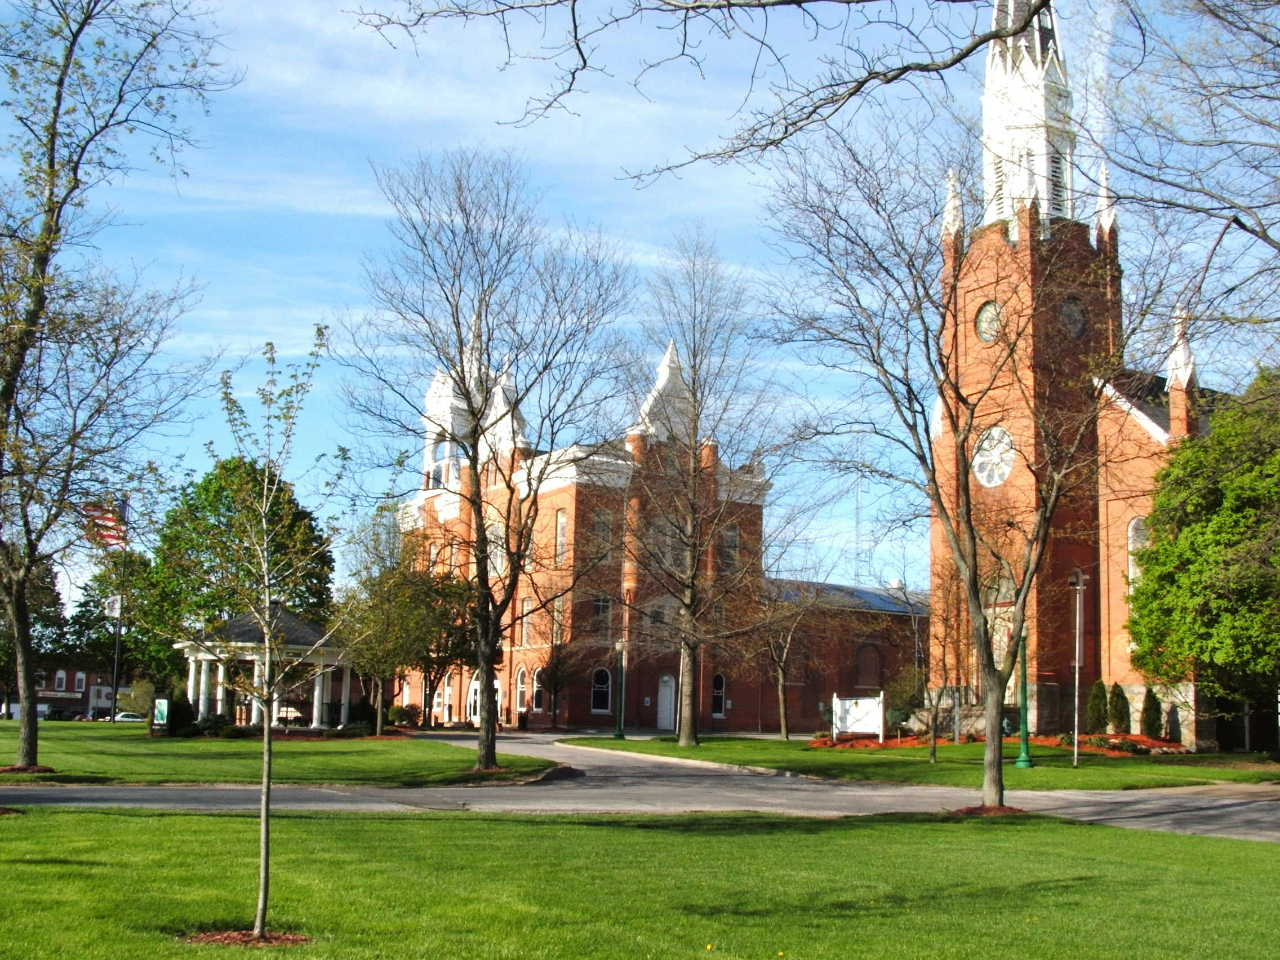 Steeple restoration project wellington oh official website